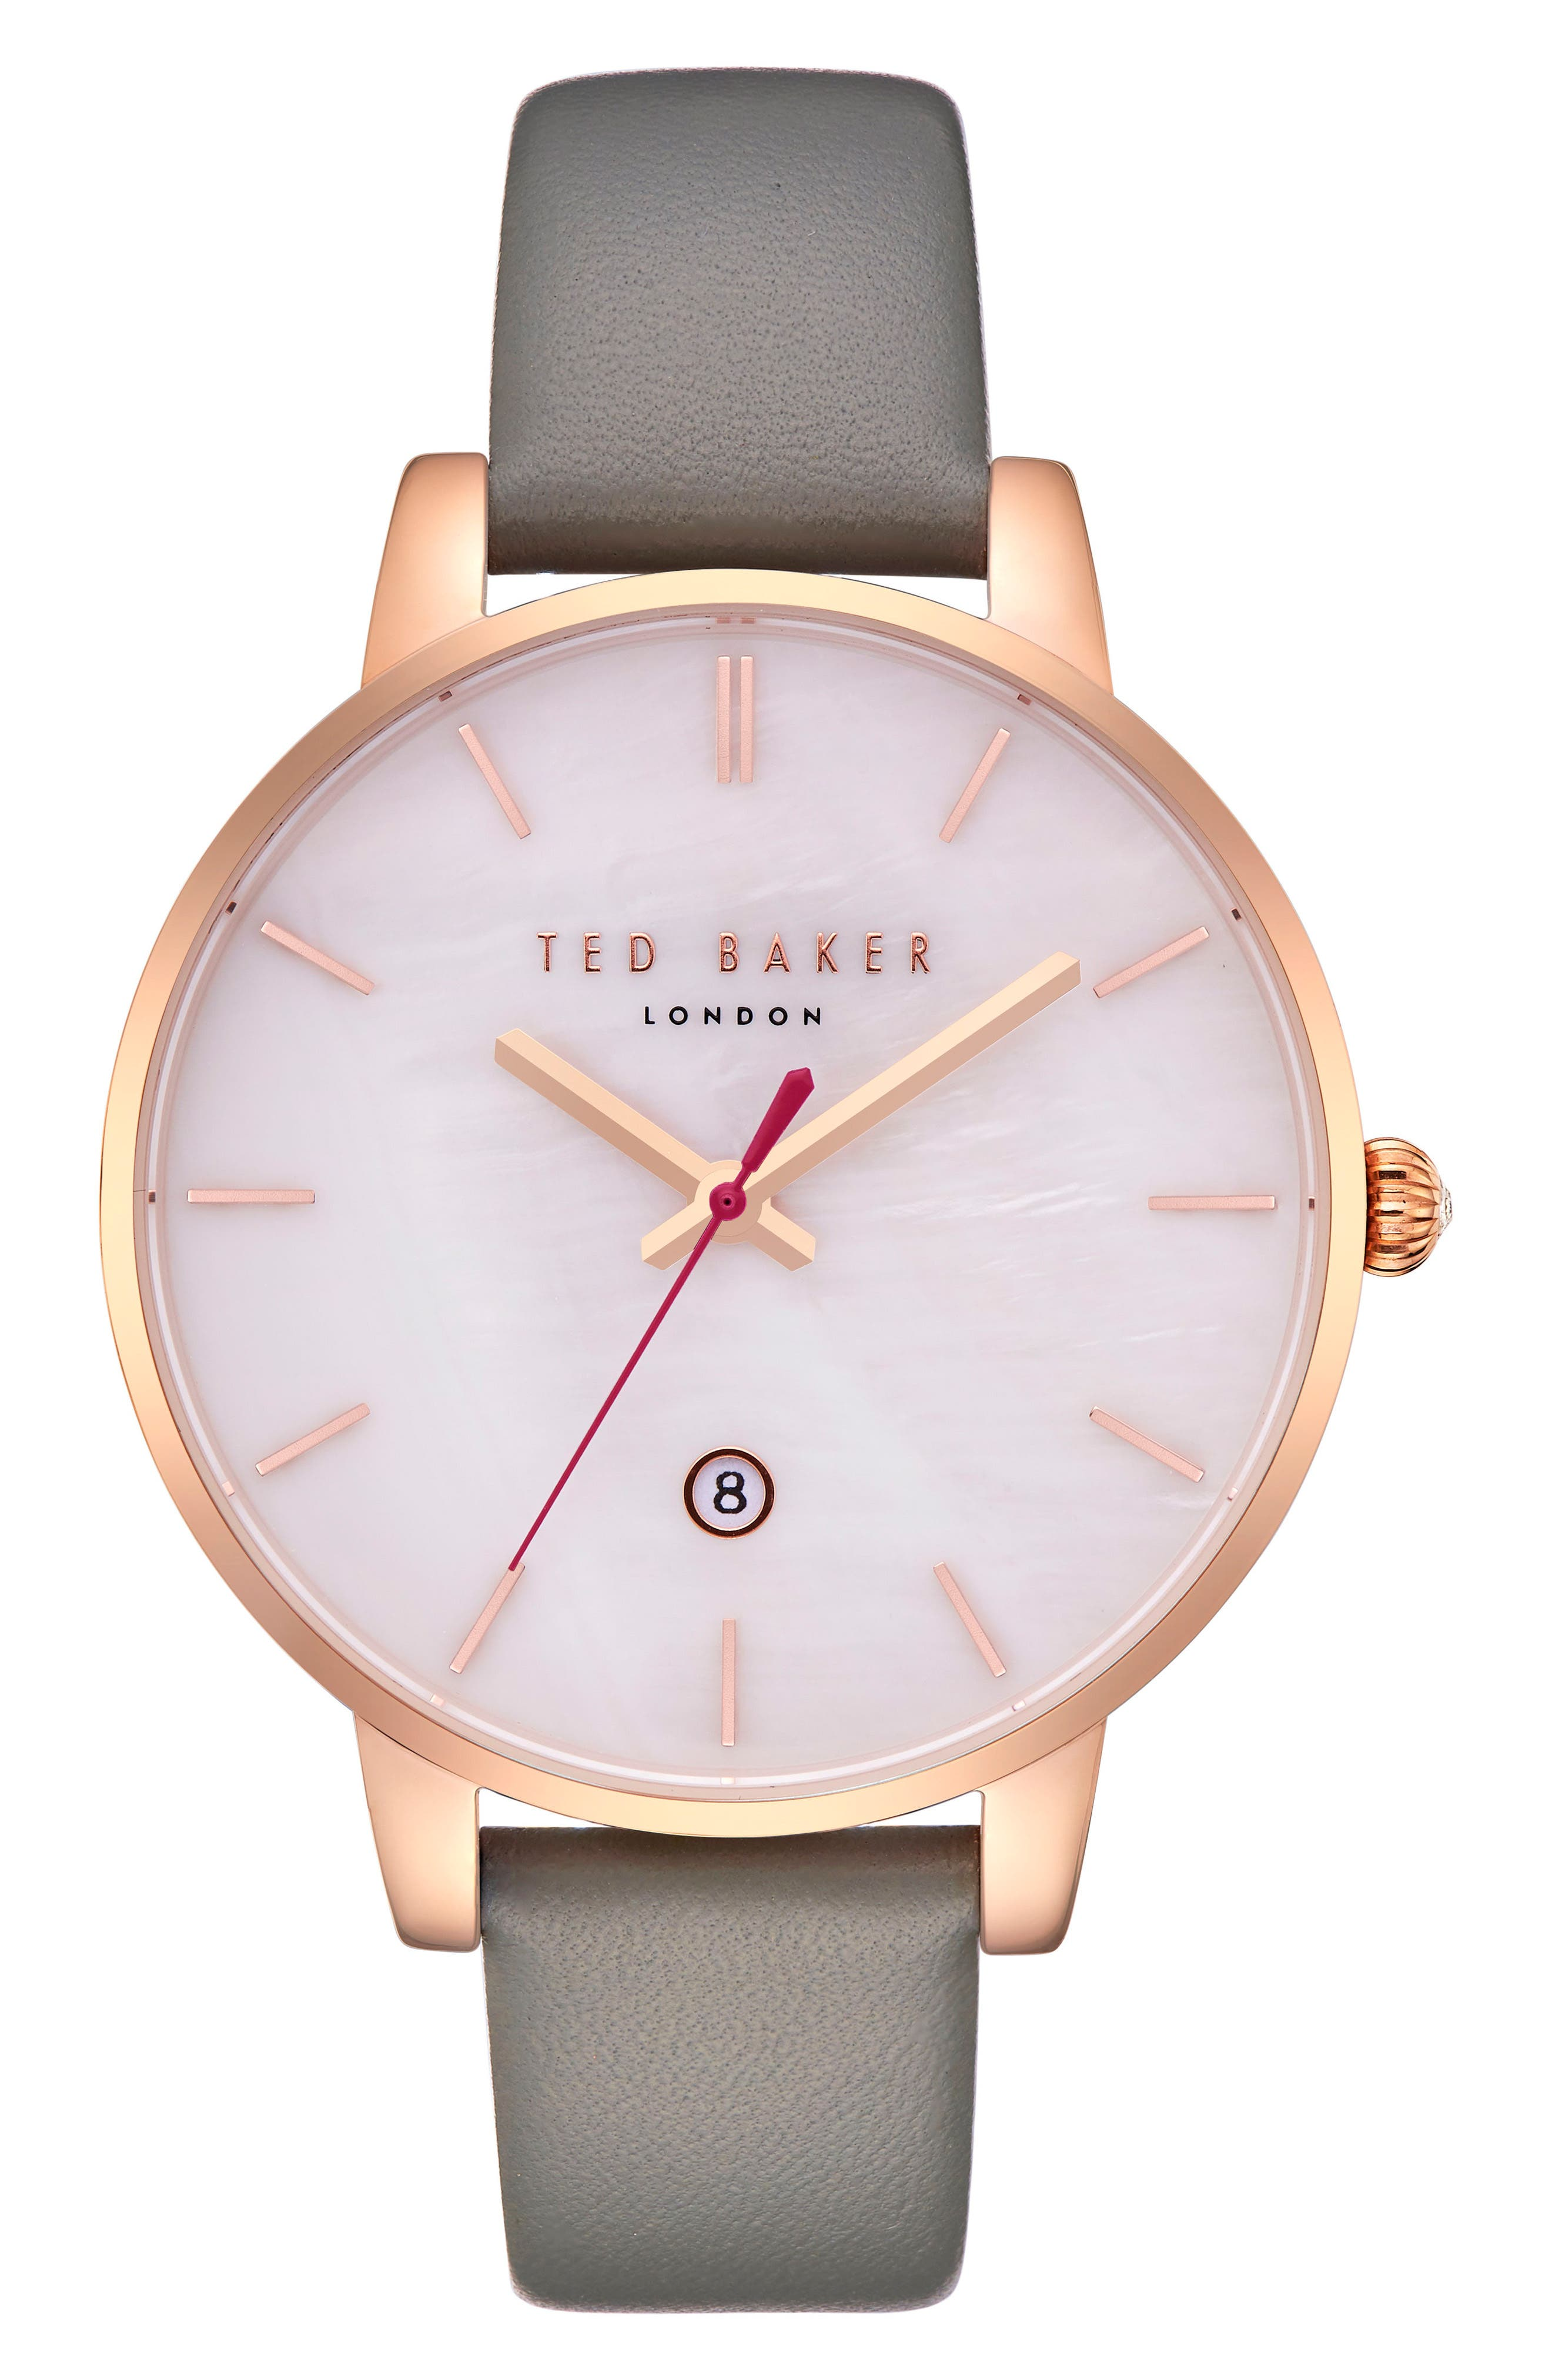 TED BAKER LONDON Kate Leather Strap Watch, 40mm, Main, color, 020